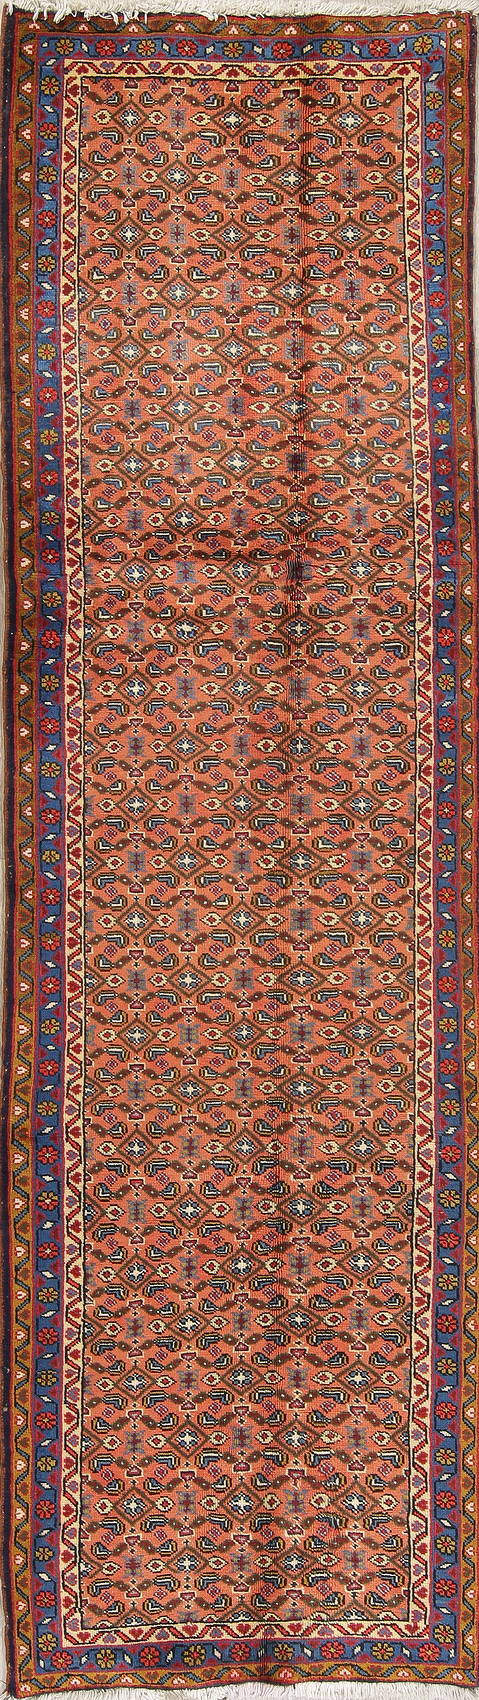 All-Over Rust Ardebil Persian Runner Rug Wool 3x9